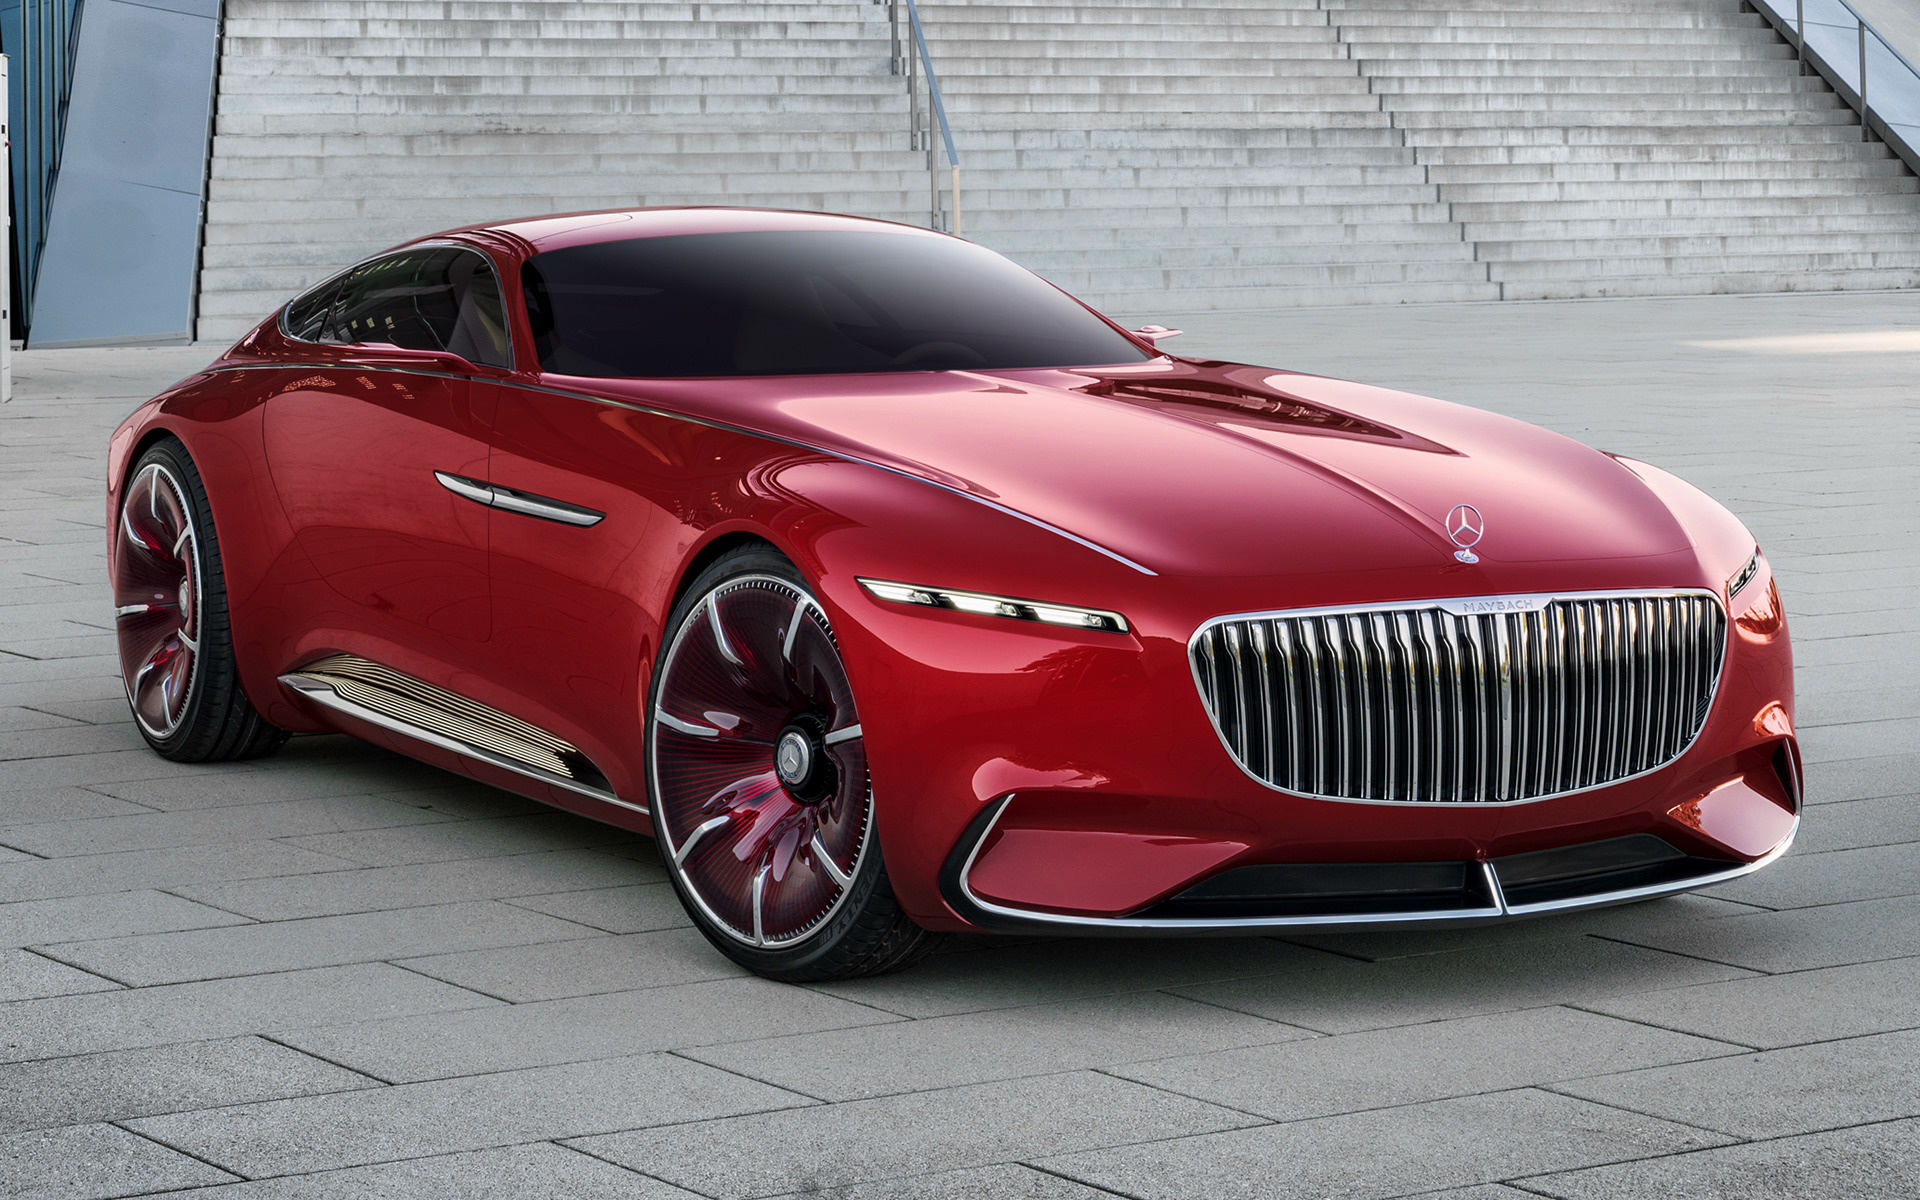 https://www.carpixel.net/w/9ff18f93b4eeee72e65b1c5a5bd66346/vision-mercedes-maybach-6-car-wallpaper-58114.jpg